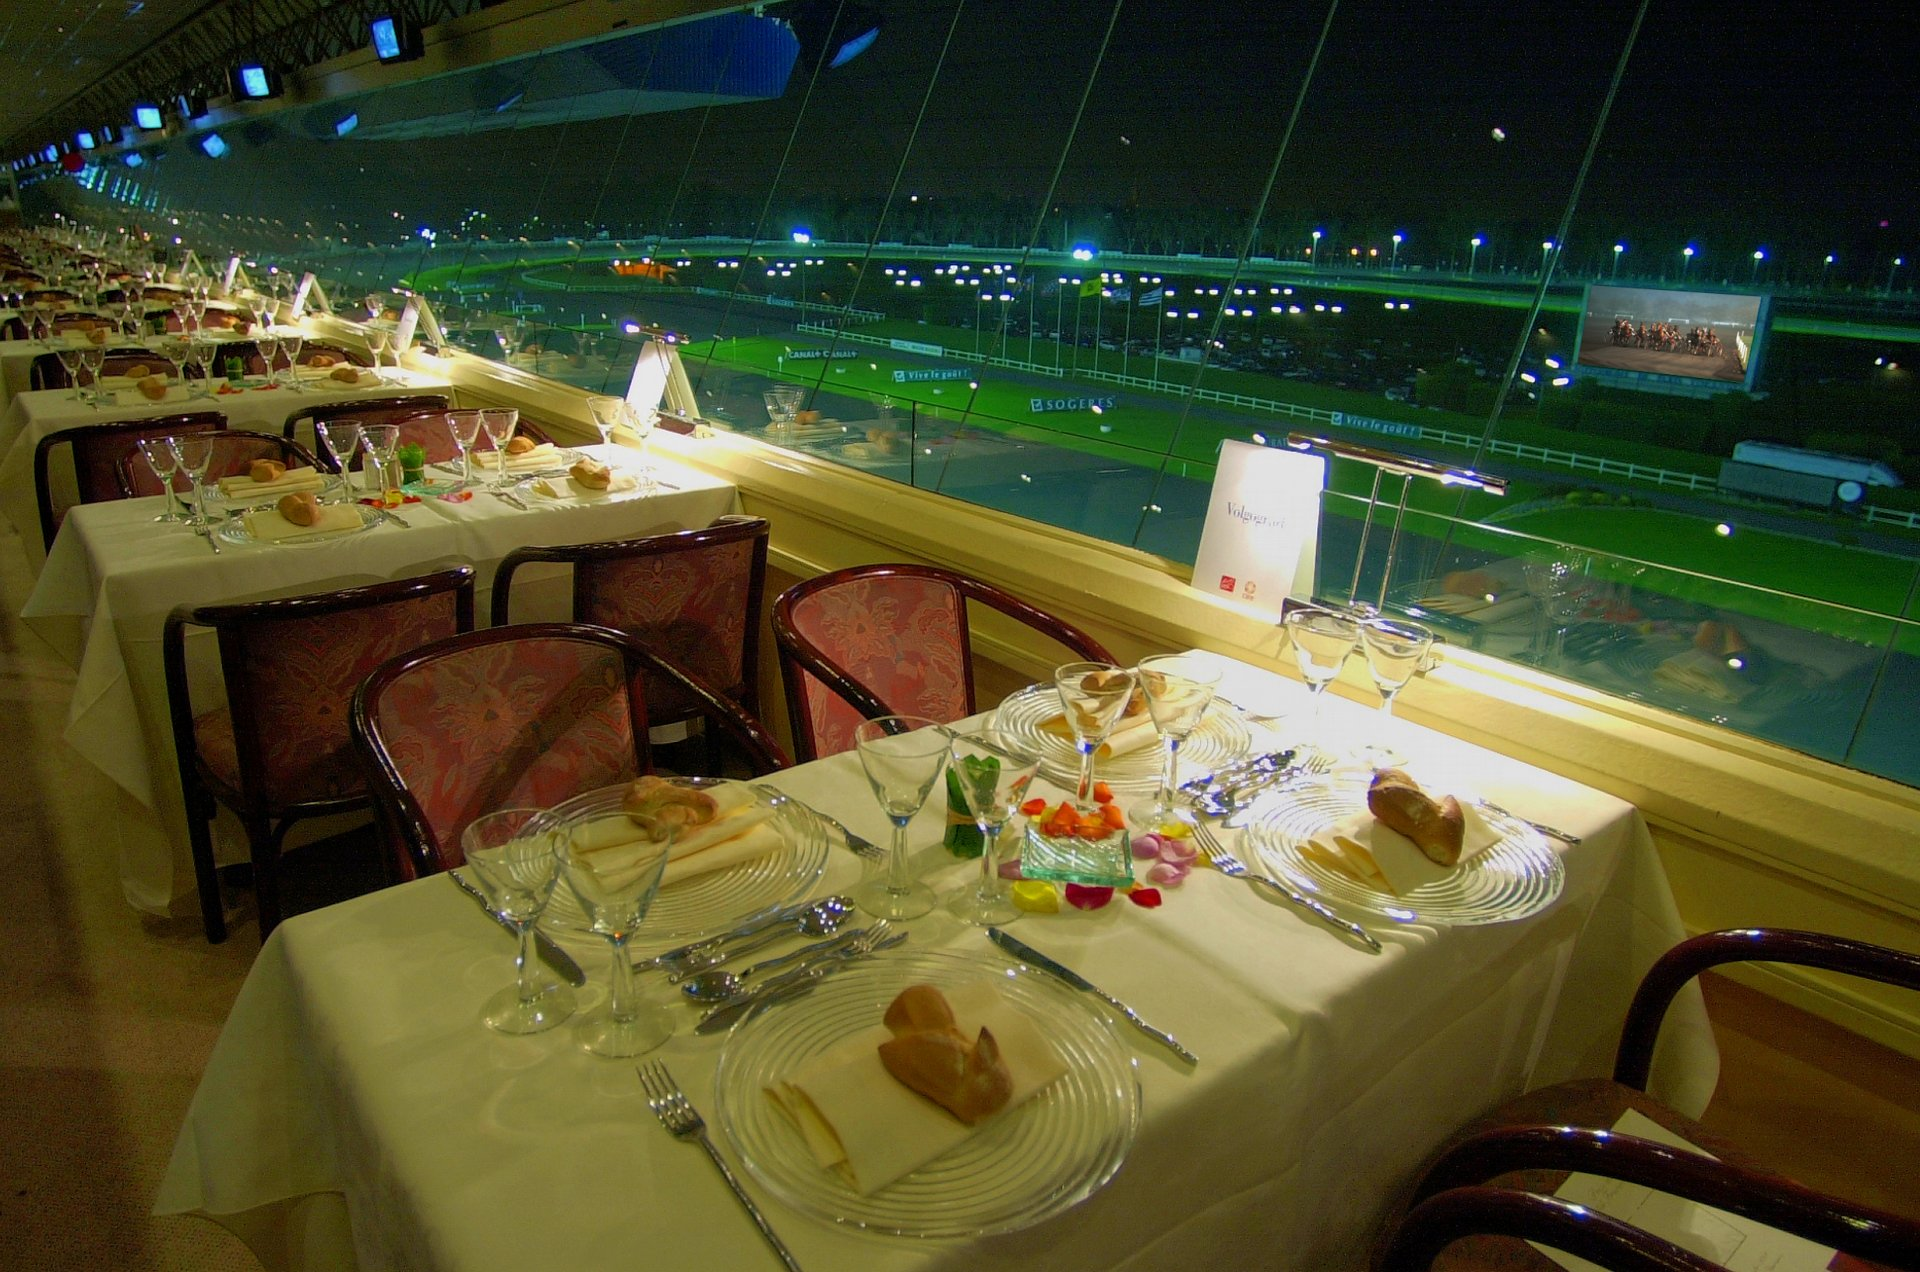 Hippodrome de Paris ideal gourmet – Hippodrome Paris-Vincennes Casaque Menu